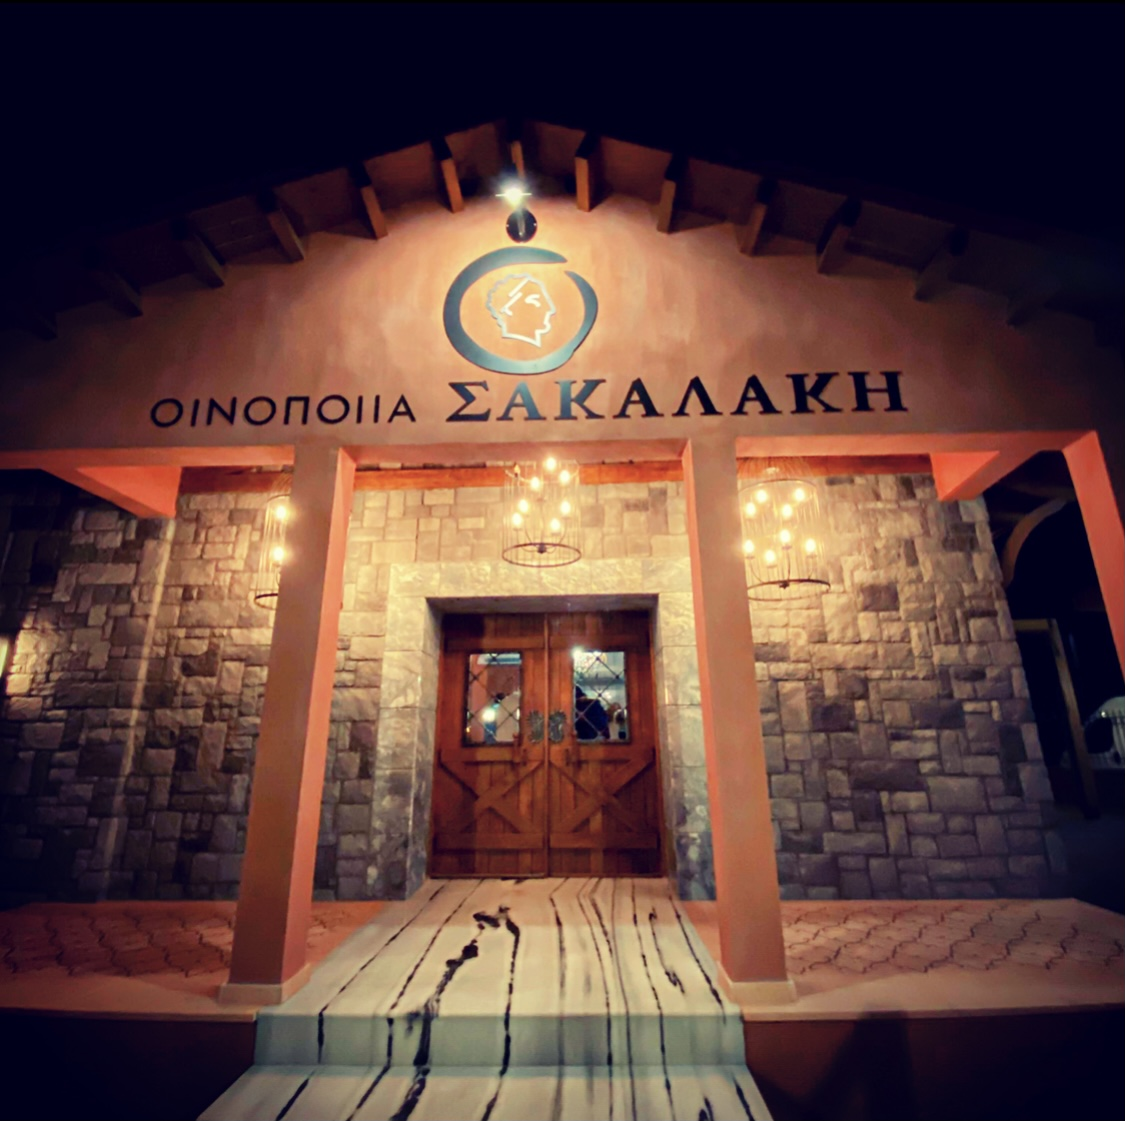 Anna Sakalaki Winemaker Sakalaki Winery Plagia Kilkis Greece – Culinary Treasure Podcast Episode 71 by Steven Shomler